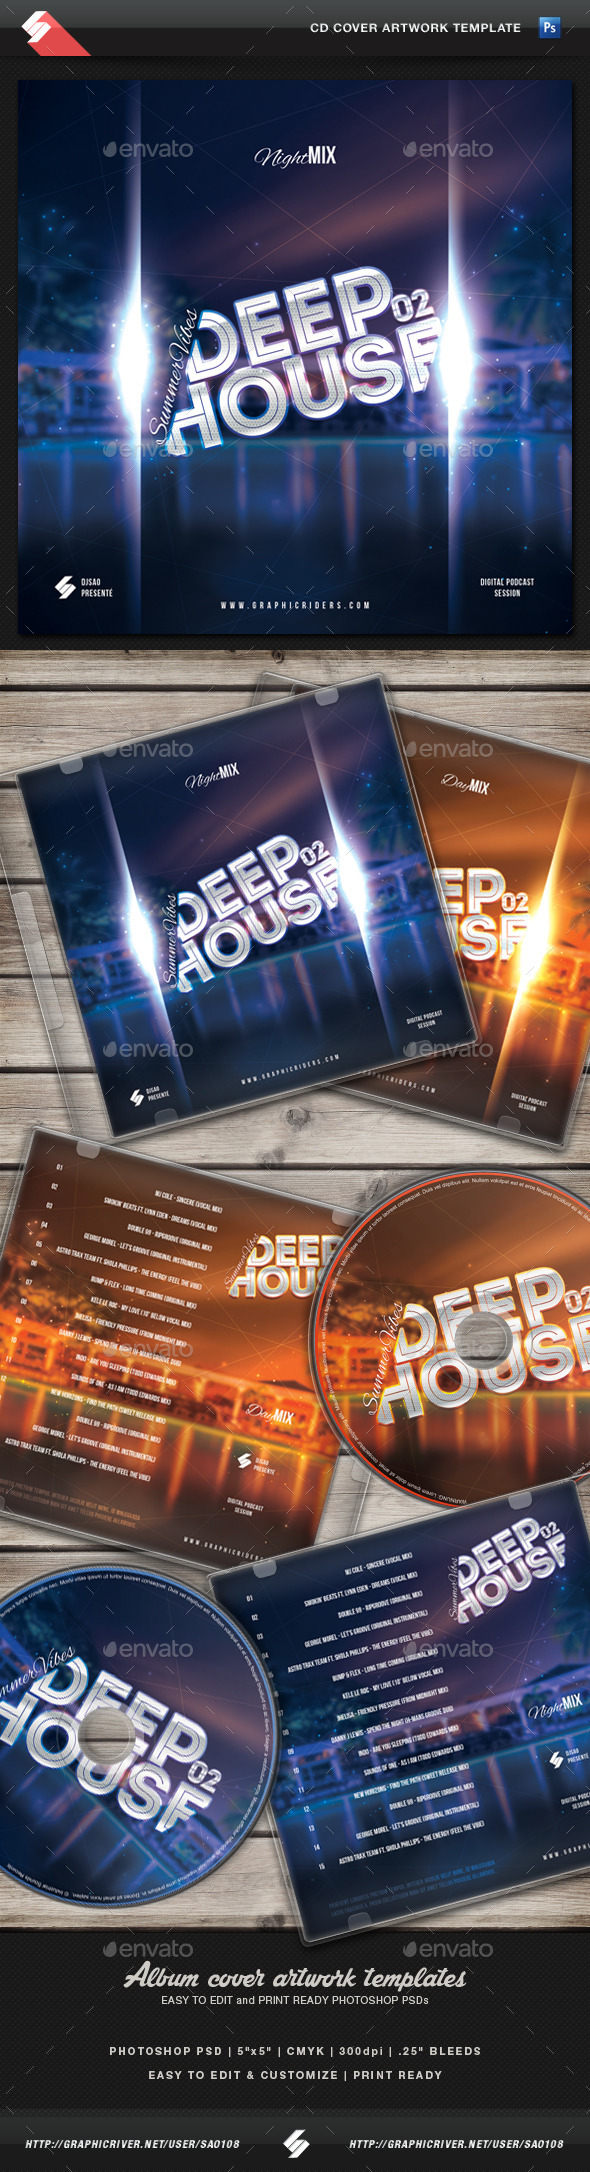 GraphicRiver Summer Vibes 02 Deep House CD Cover Template 11158824